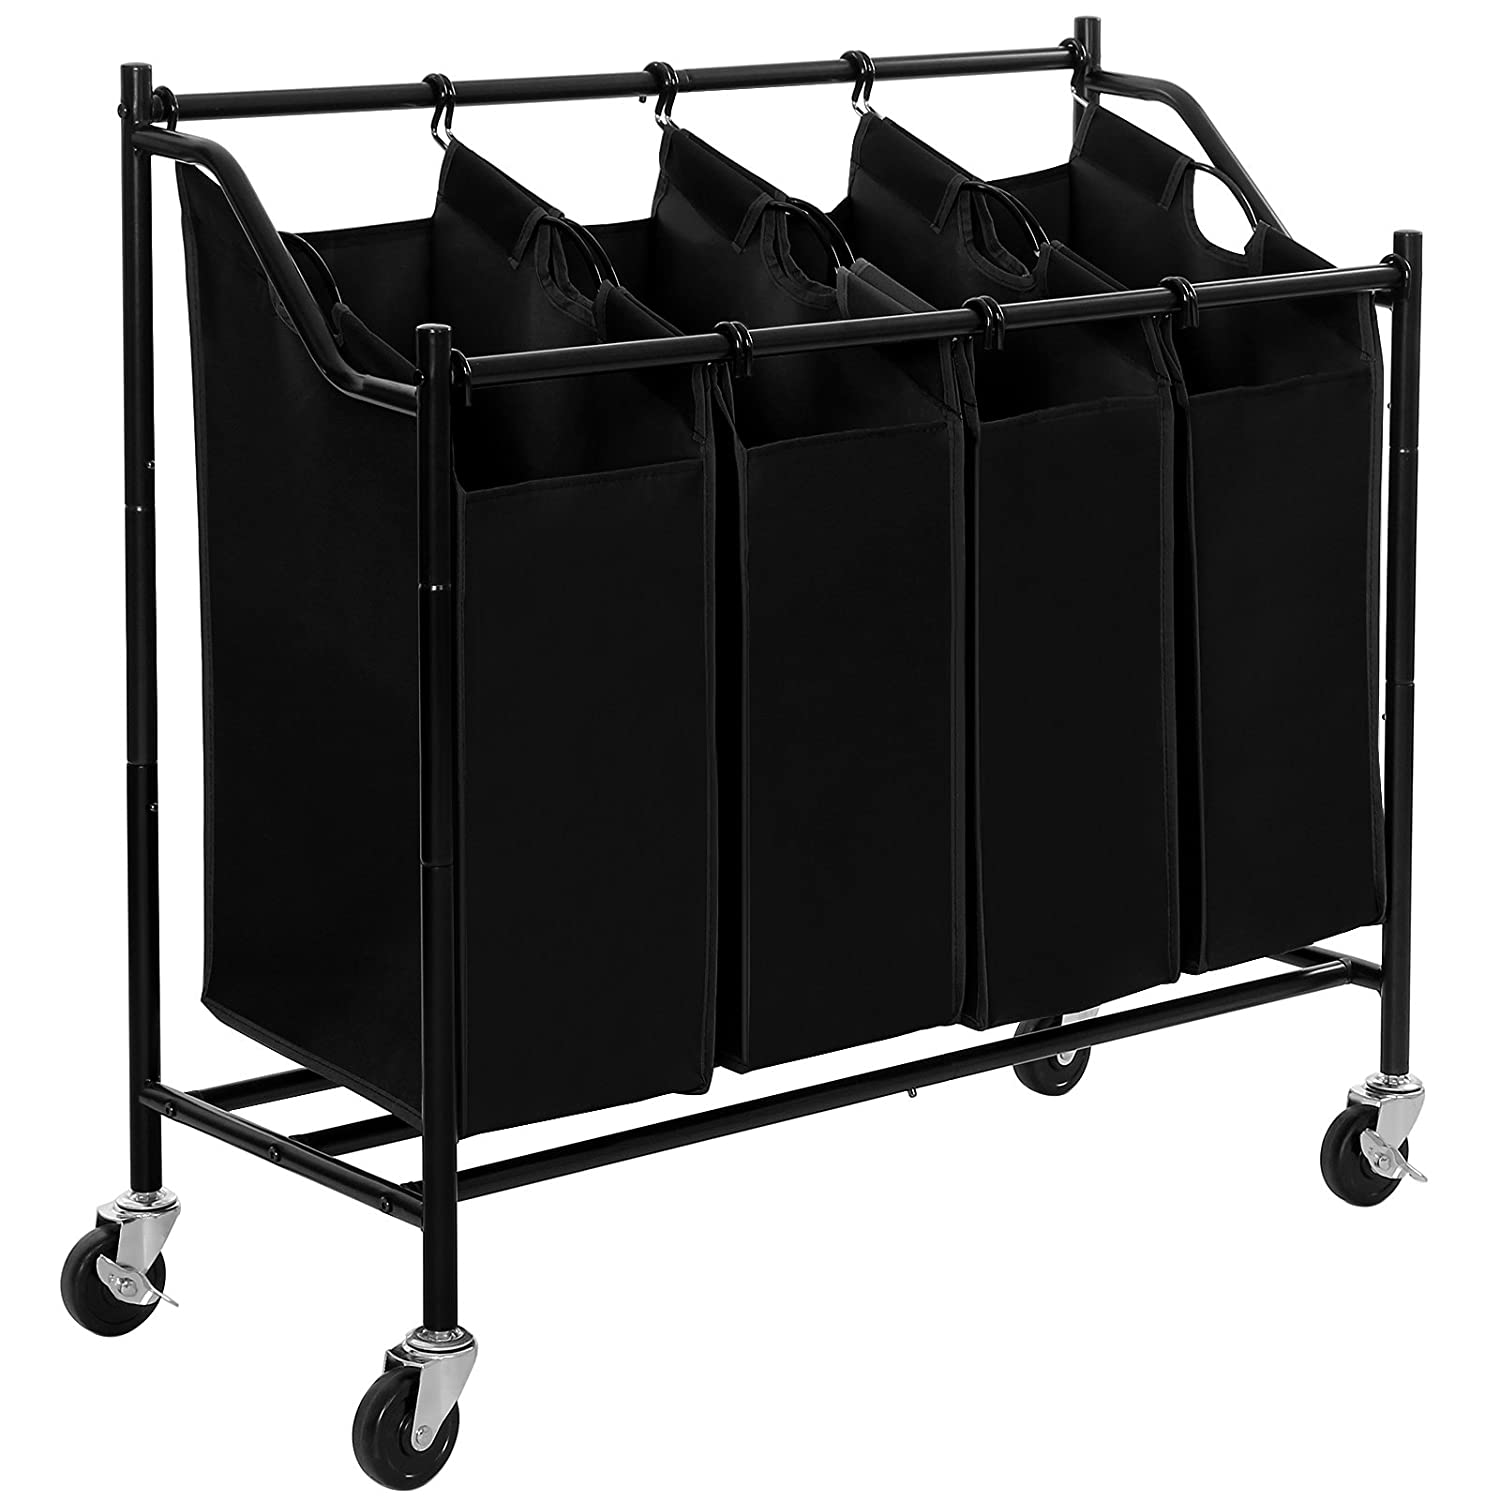 2018 Best 4 Bag Laundry Sorter Cart Reviews Finderists